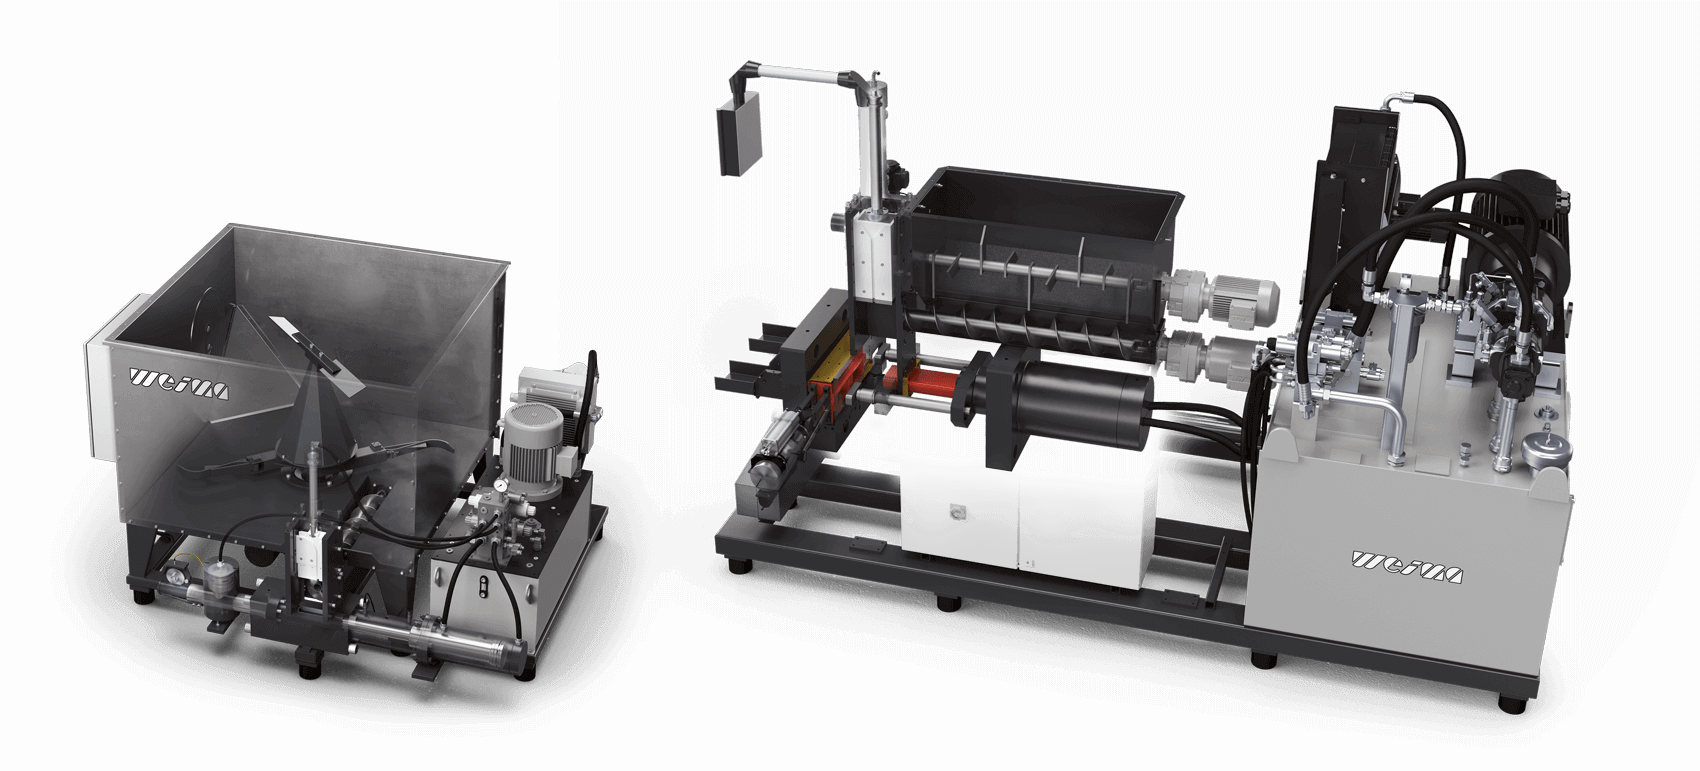 two models of WEIMA briquette presses sit side by side